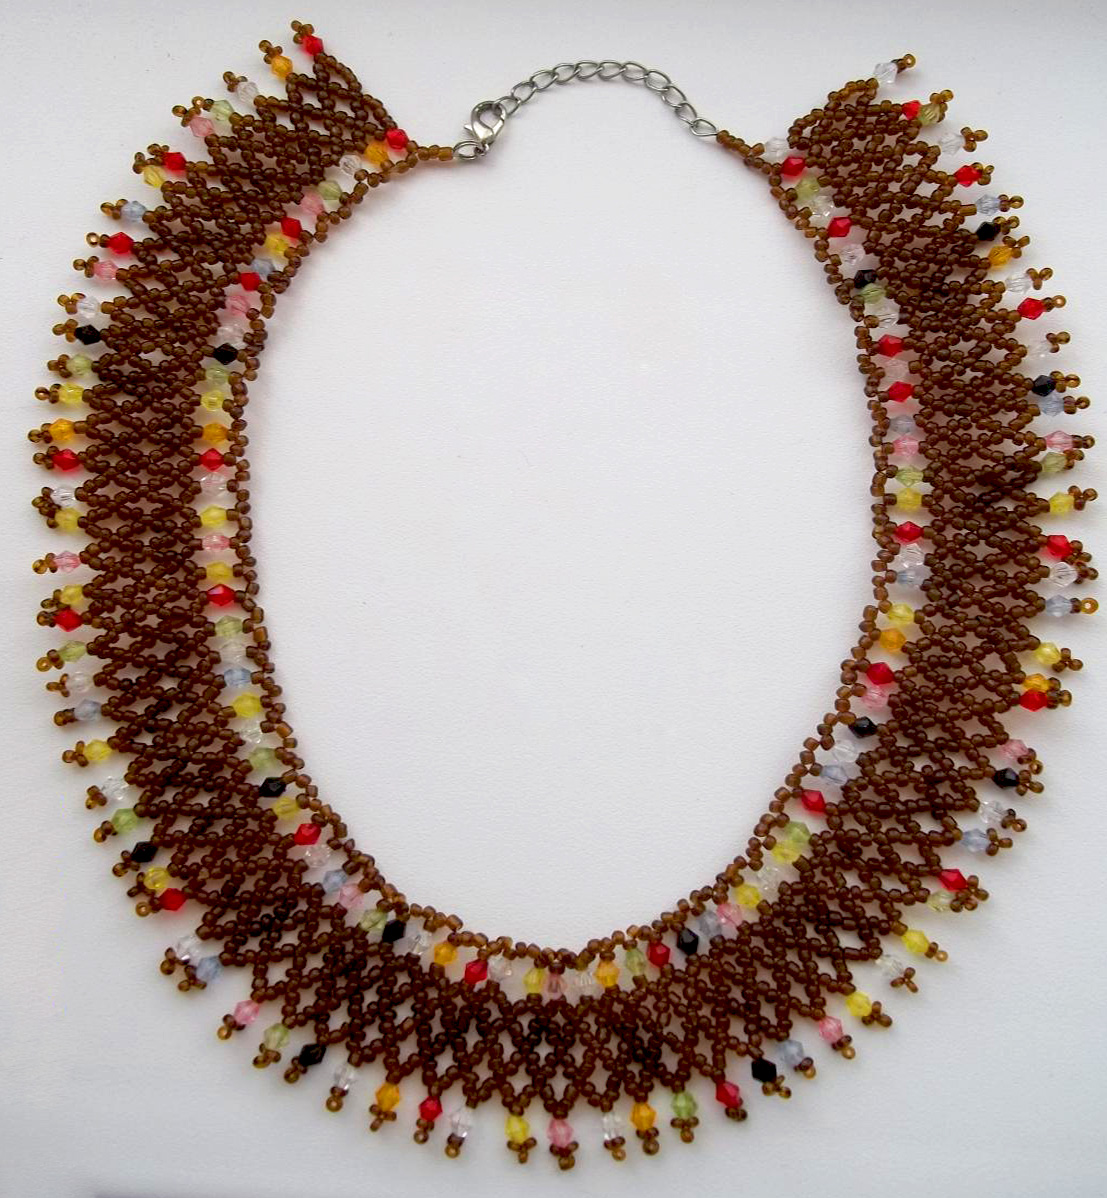 free-tutrial-beaded-necklace-pattern-0